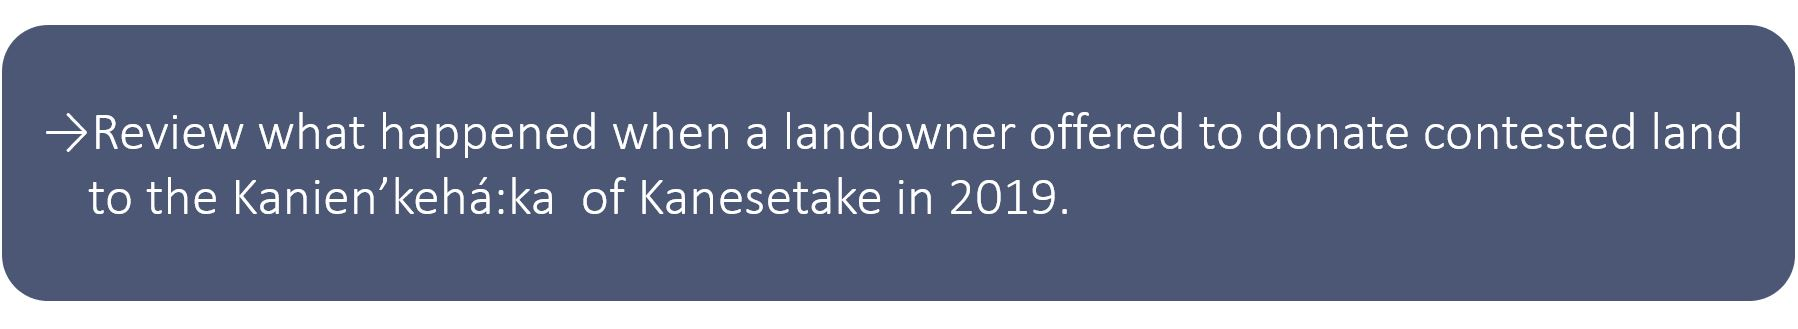 Review what happened when a landowner offered to donate contested land to the Kanien'kehá:ka of Kanesetake in 2019.